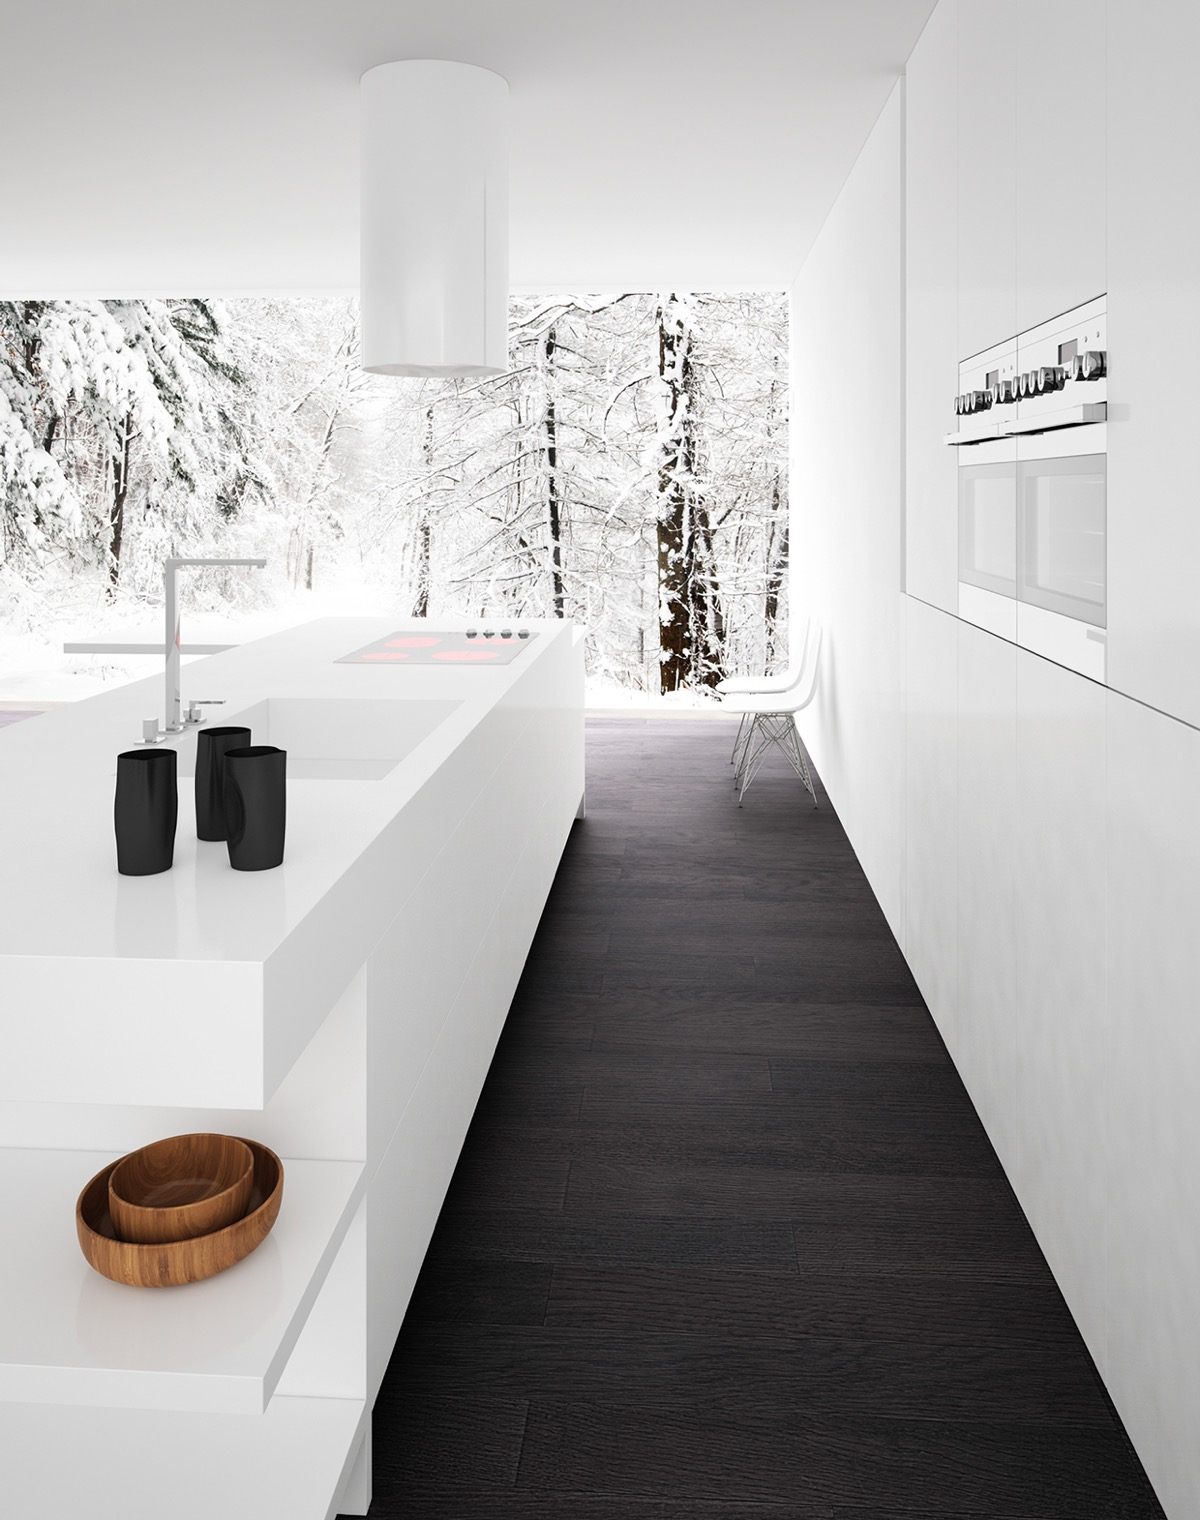 Incredible 40 Beautiful Black White Kitchen Designs Download Free Architecture Designs Sospemadebymaigaardcom